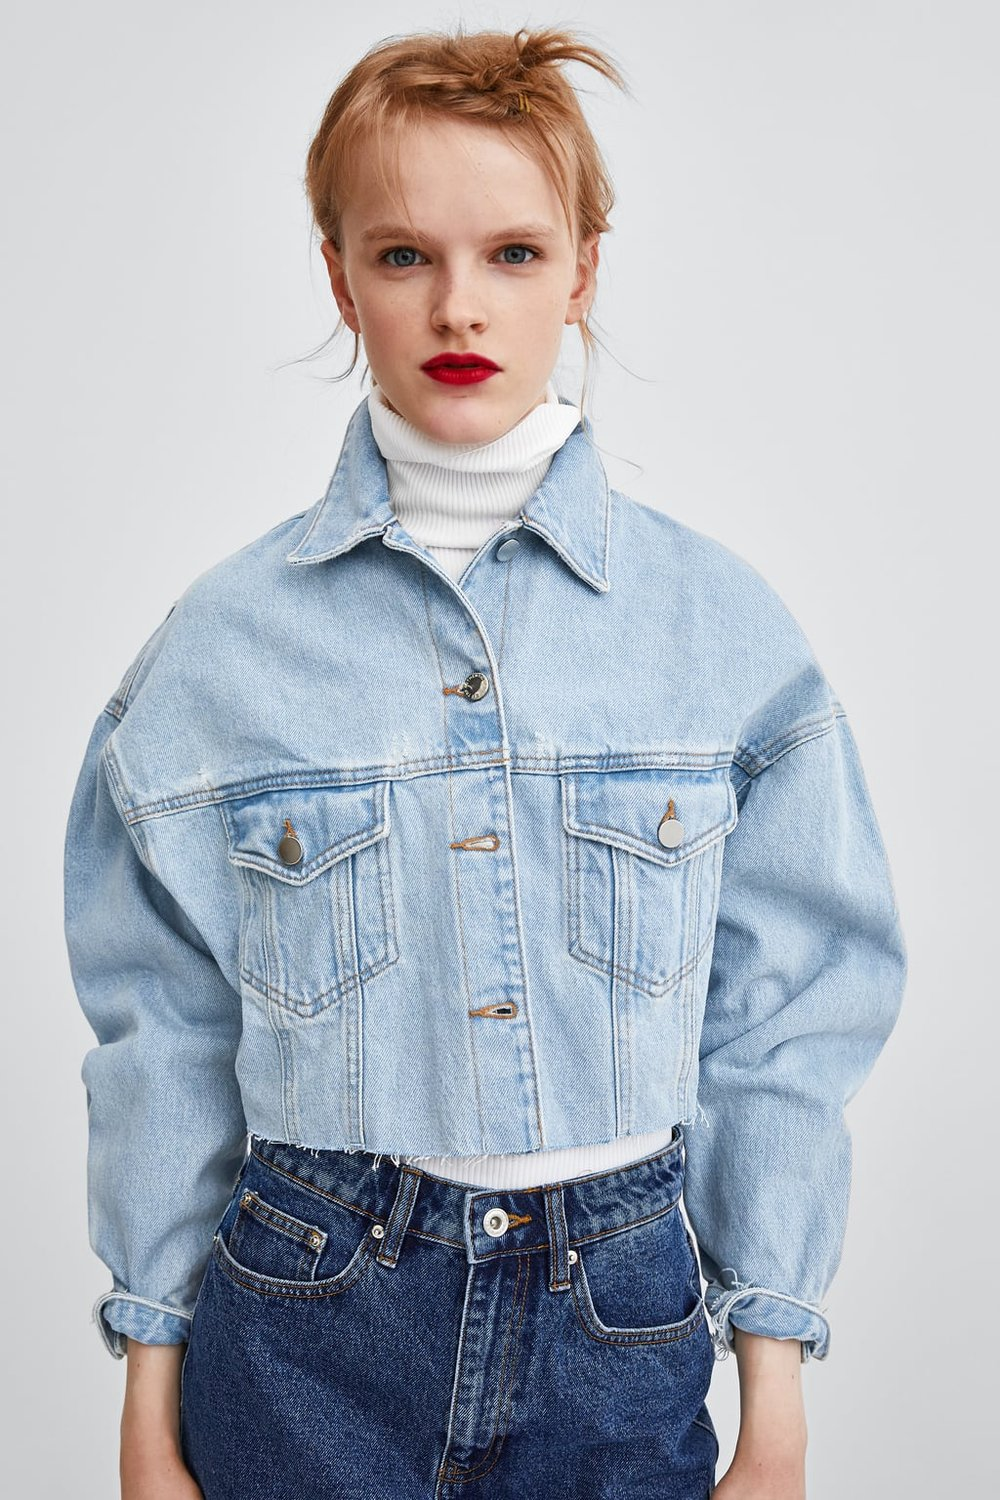 https://www.zara.com/ca/en/authentic-denim-damaged-jacket-p09123226.html?v1=6509546&v2=1080528